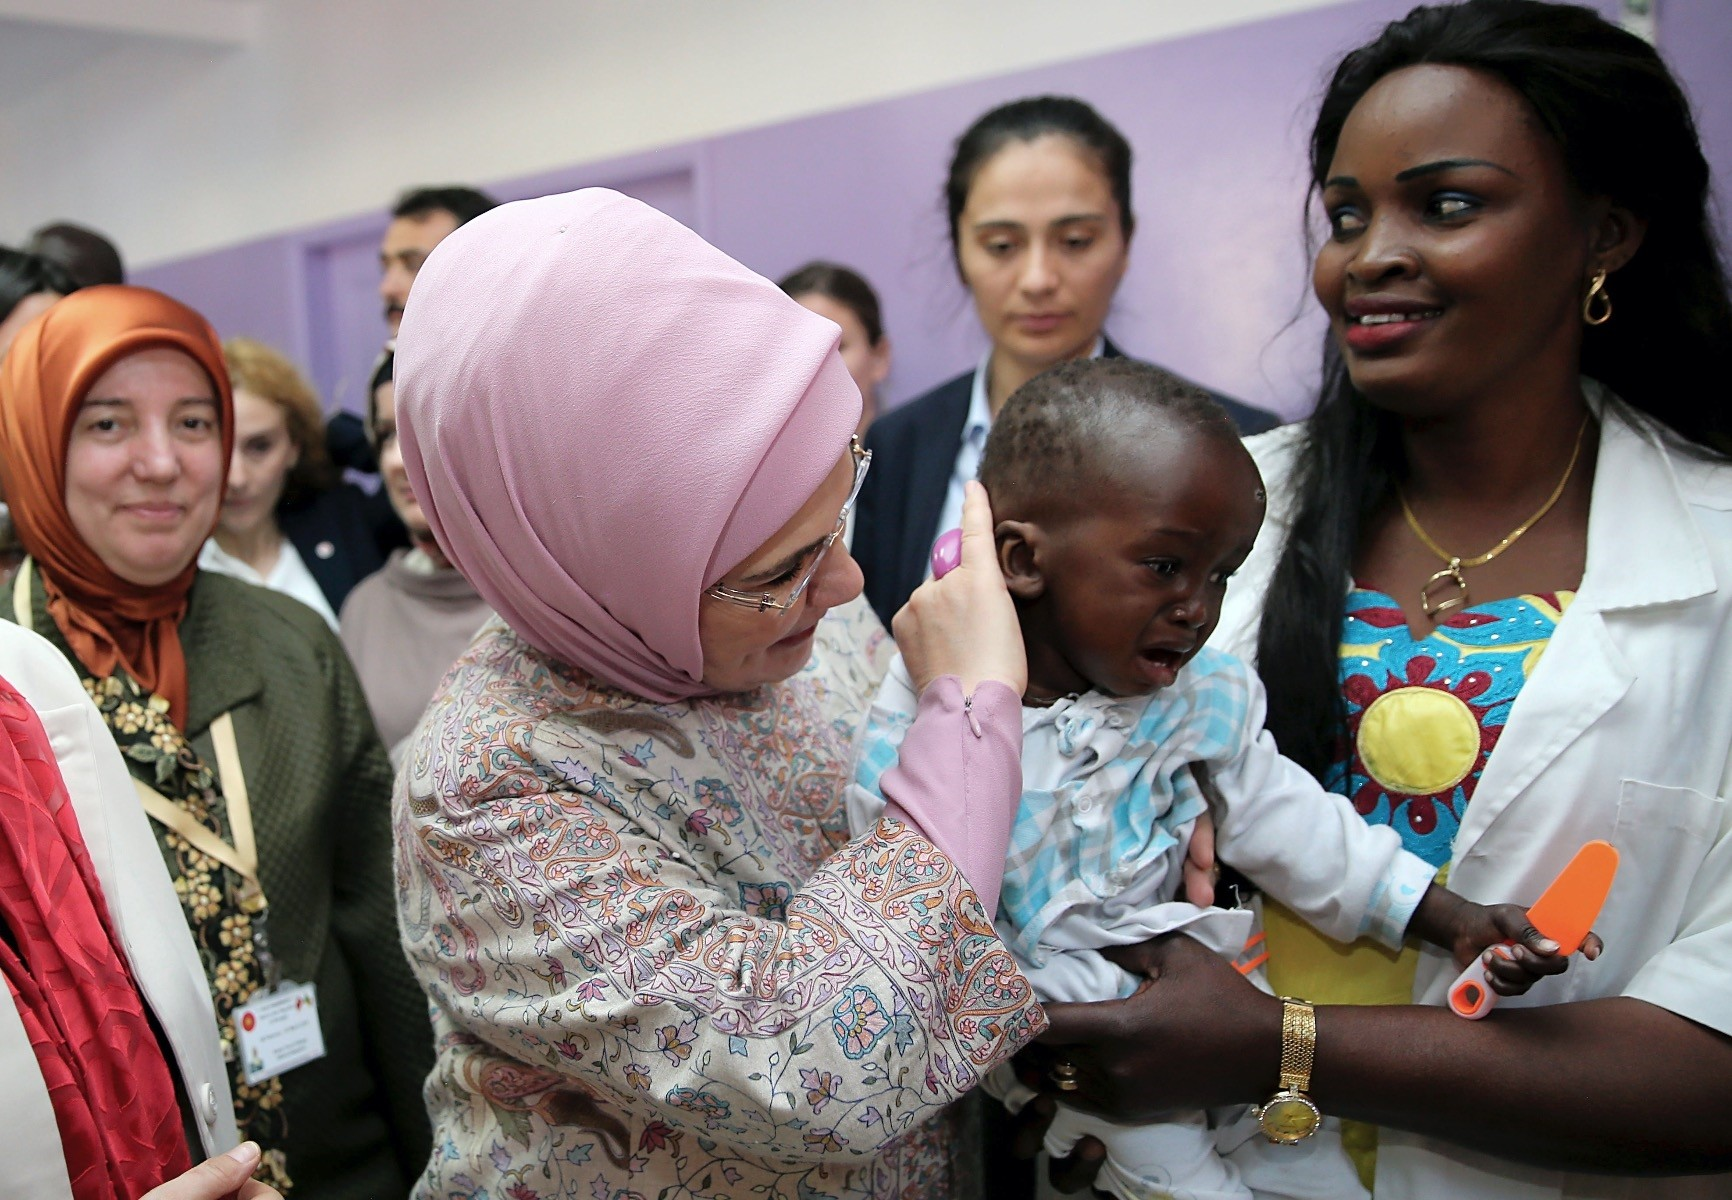 Turkish first lady Emine Erdou011fan gently caresses a Senegalese baby during her visit to a Turkey-sponsored school in Dakar, March 1.